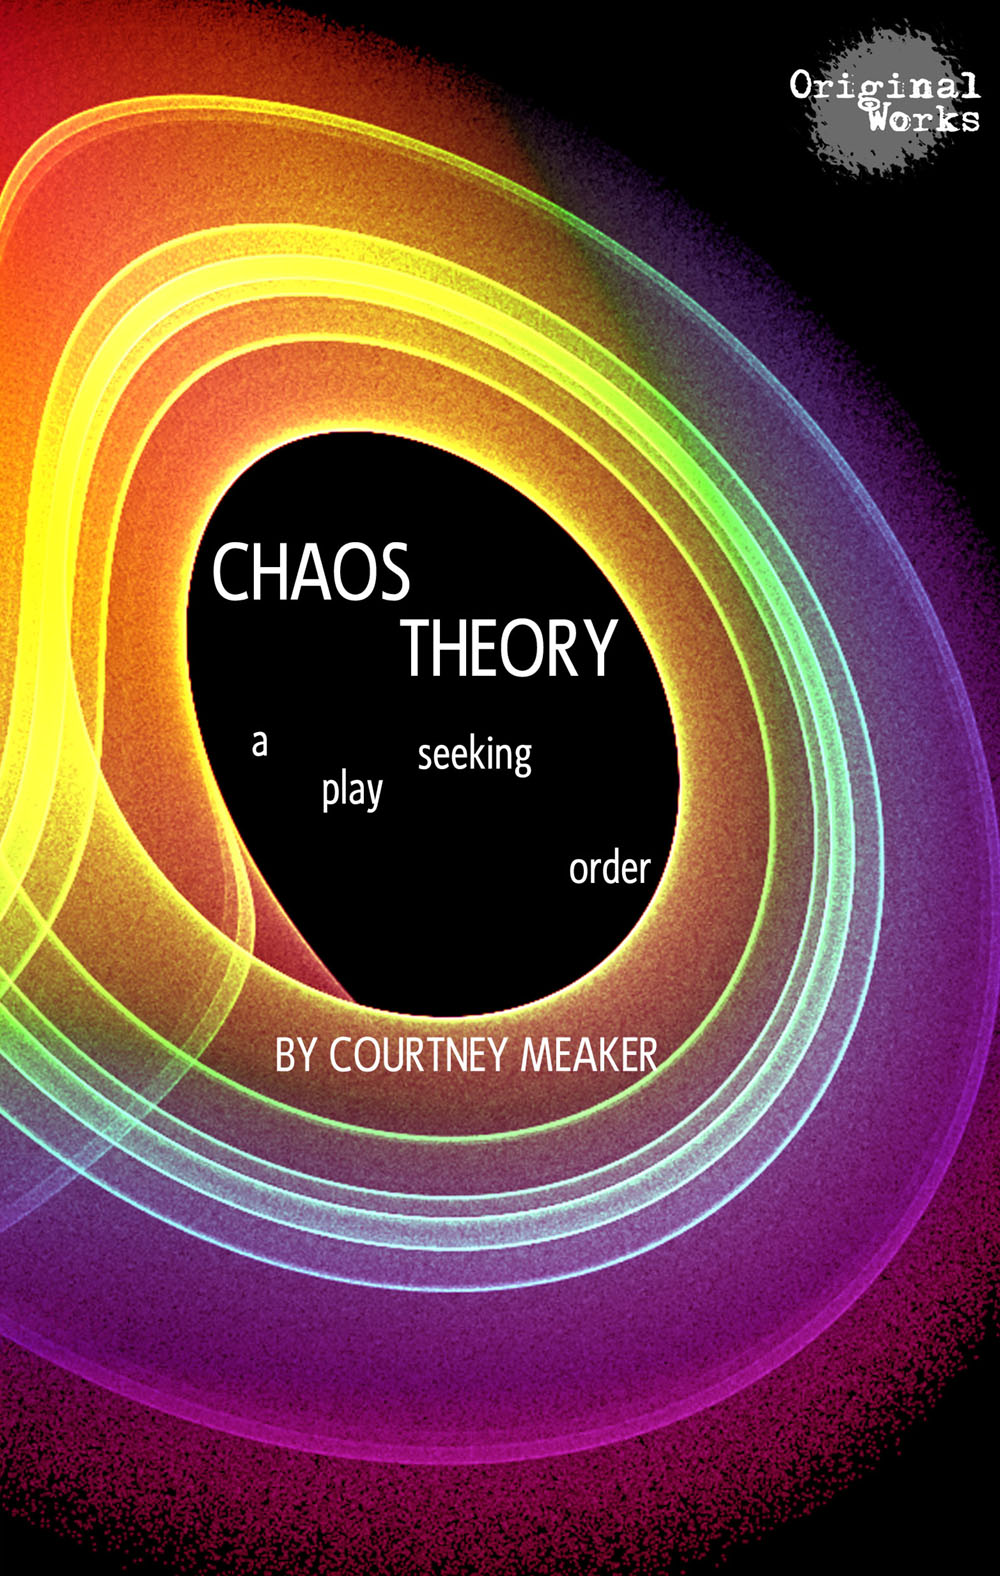 Quot Chaos Theory Quot By Courtney Meaker